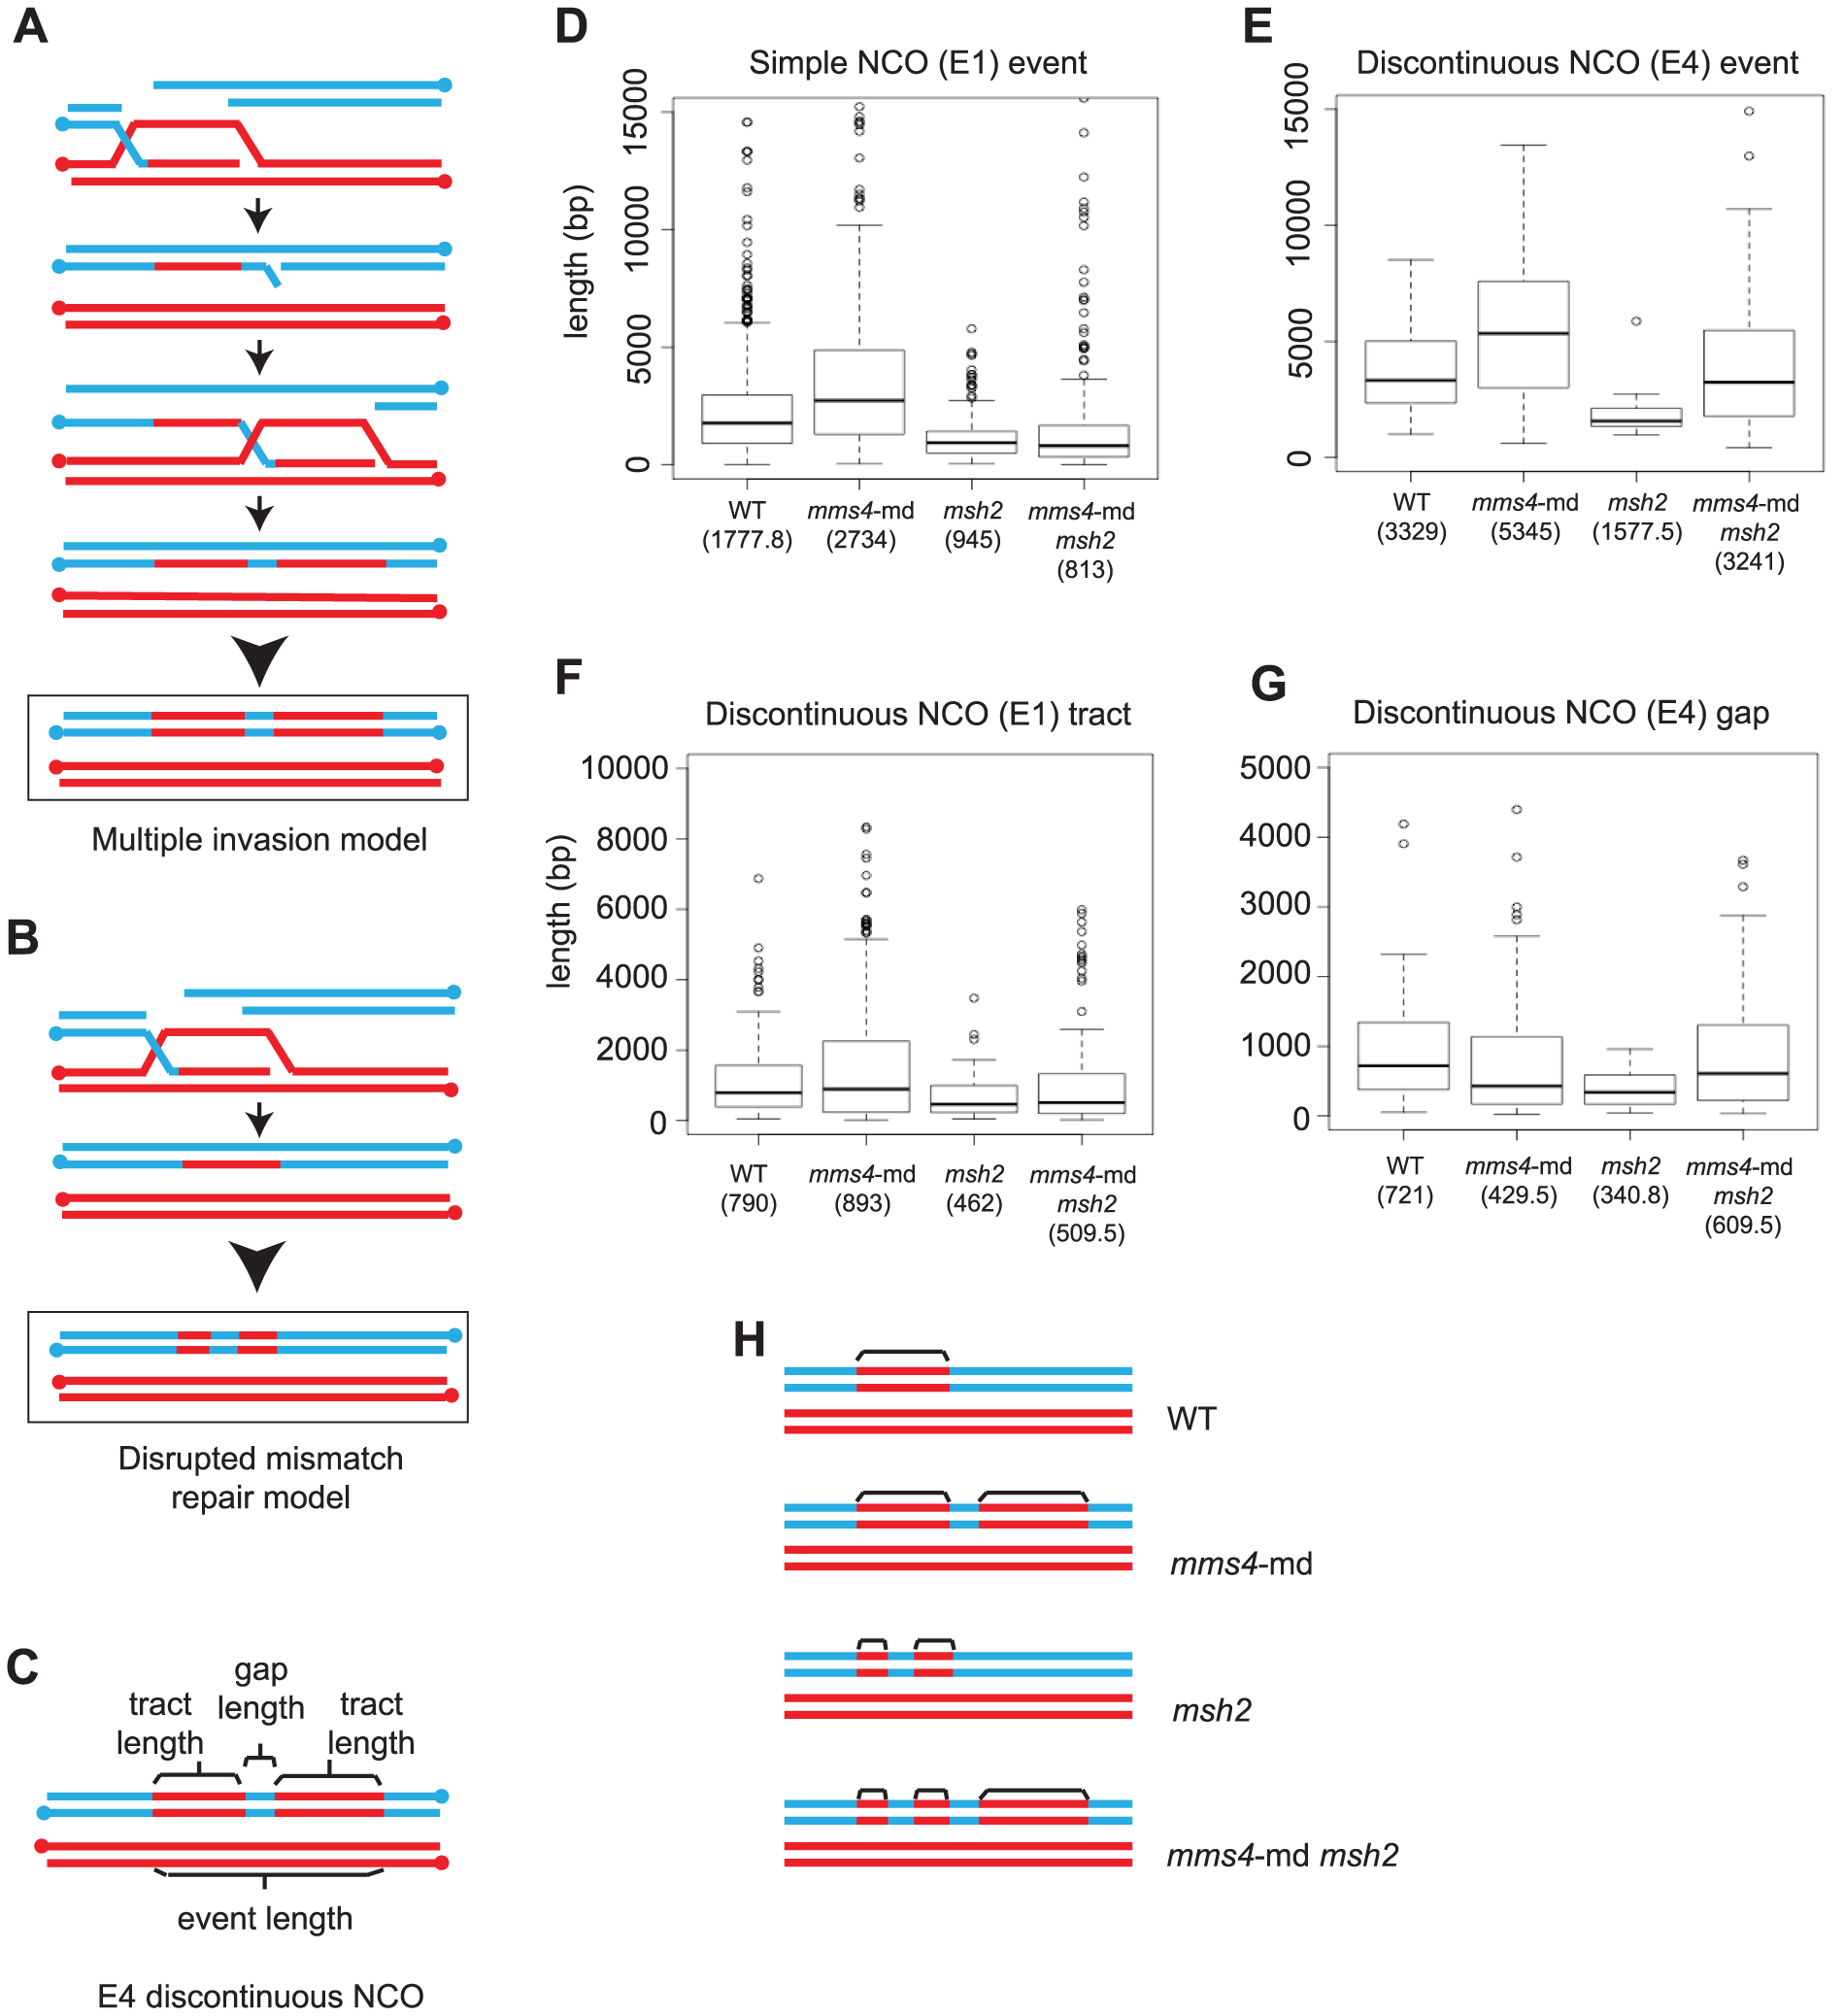 Multiple strand invasions can account for discontinuities seen in <i>mms4-md</i>.